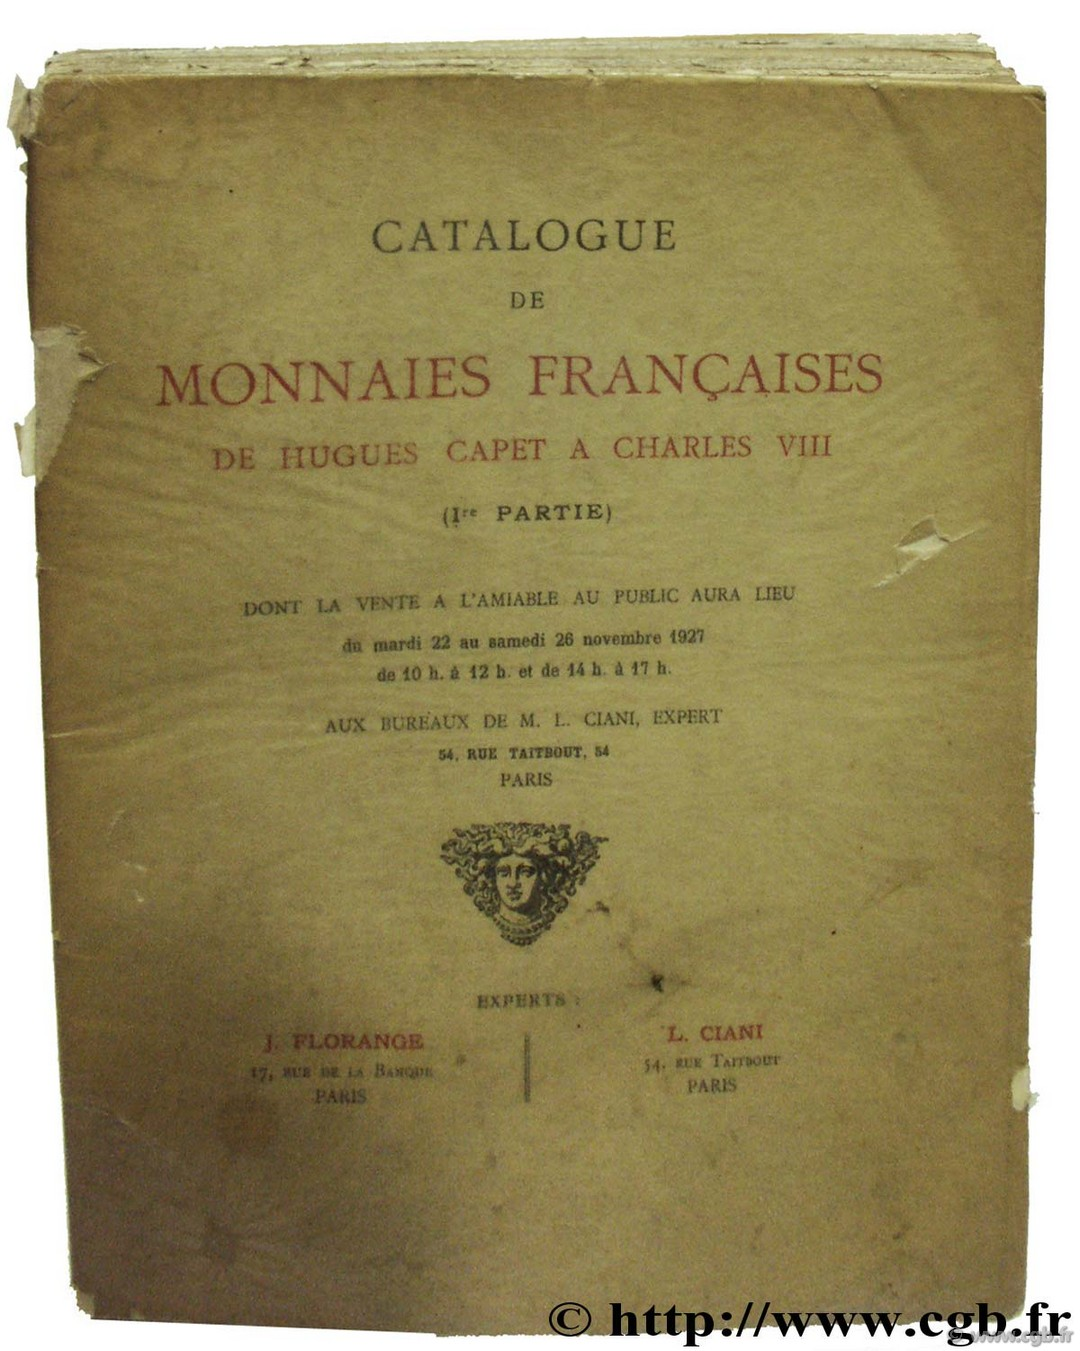 Catalogue de monnaies françaises de Hugues Capet à Charles VIII (collection Marchéville) Collection Marchéville FLORANGE J., CIANI L.